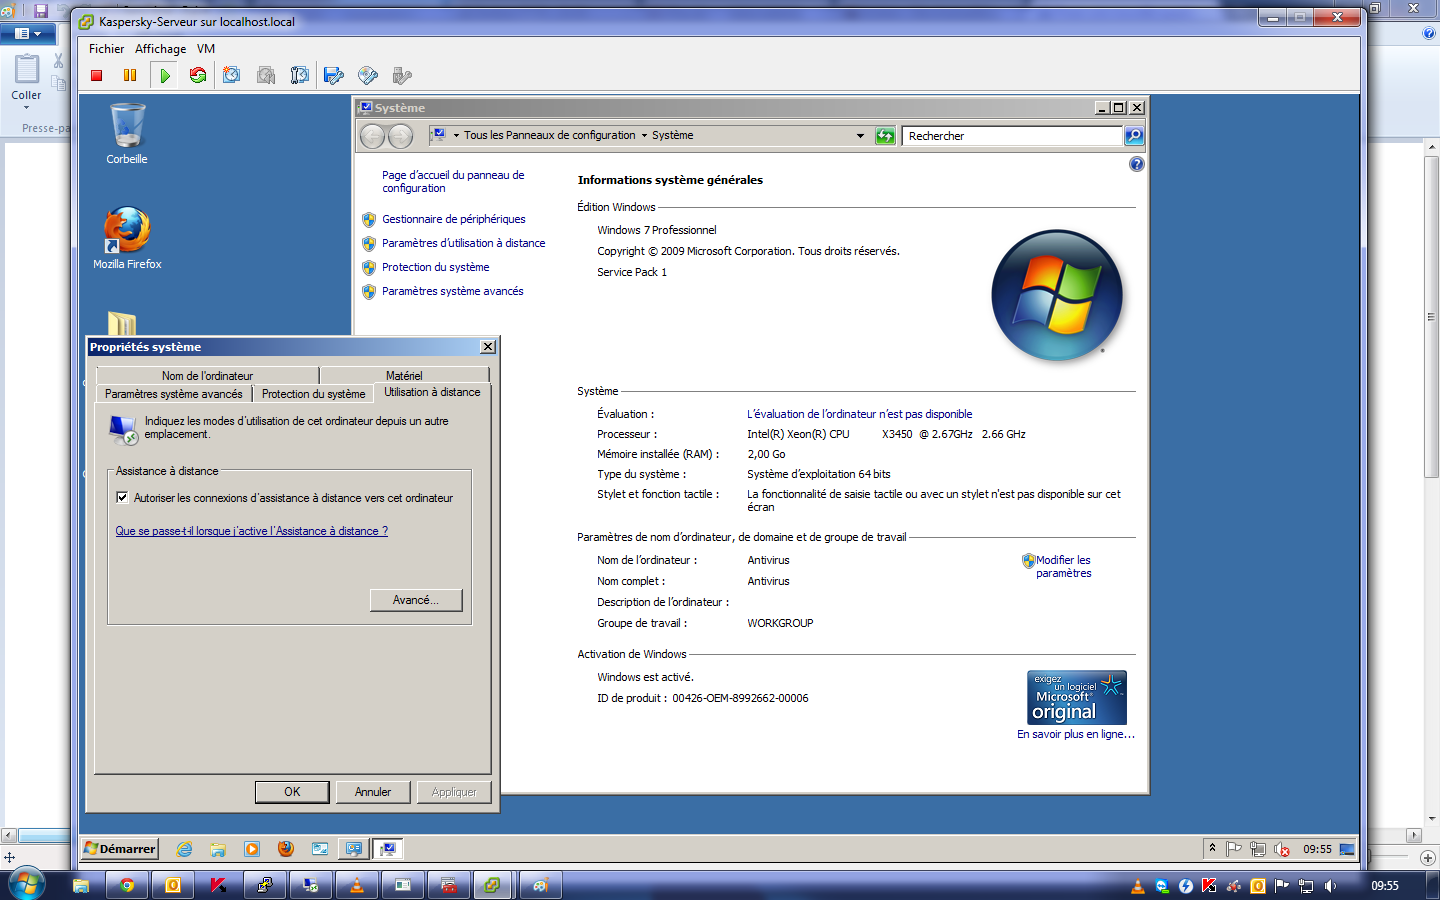 Acces bureau distance vers machine sous windows 7 impossible - Activer le bureau a distance windows 7 ...